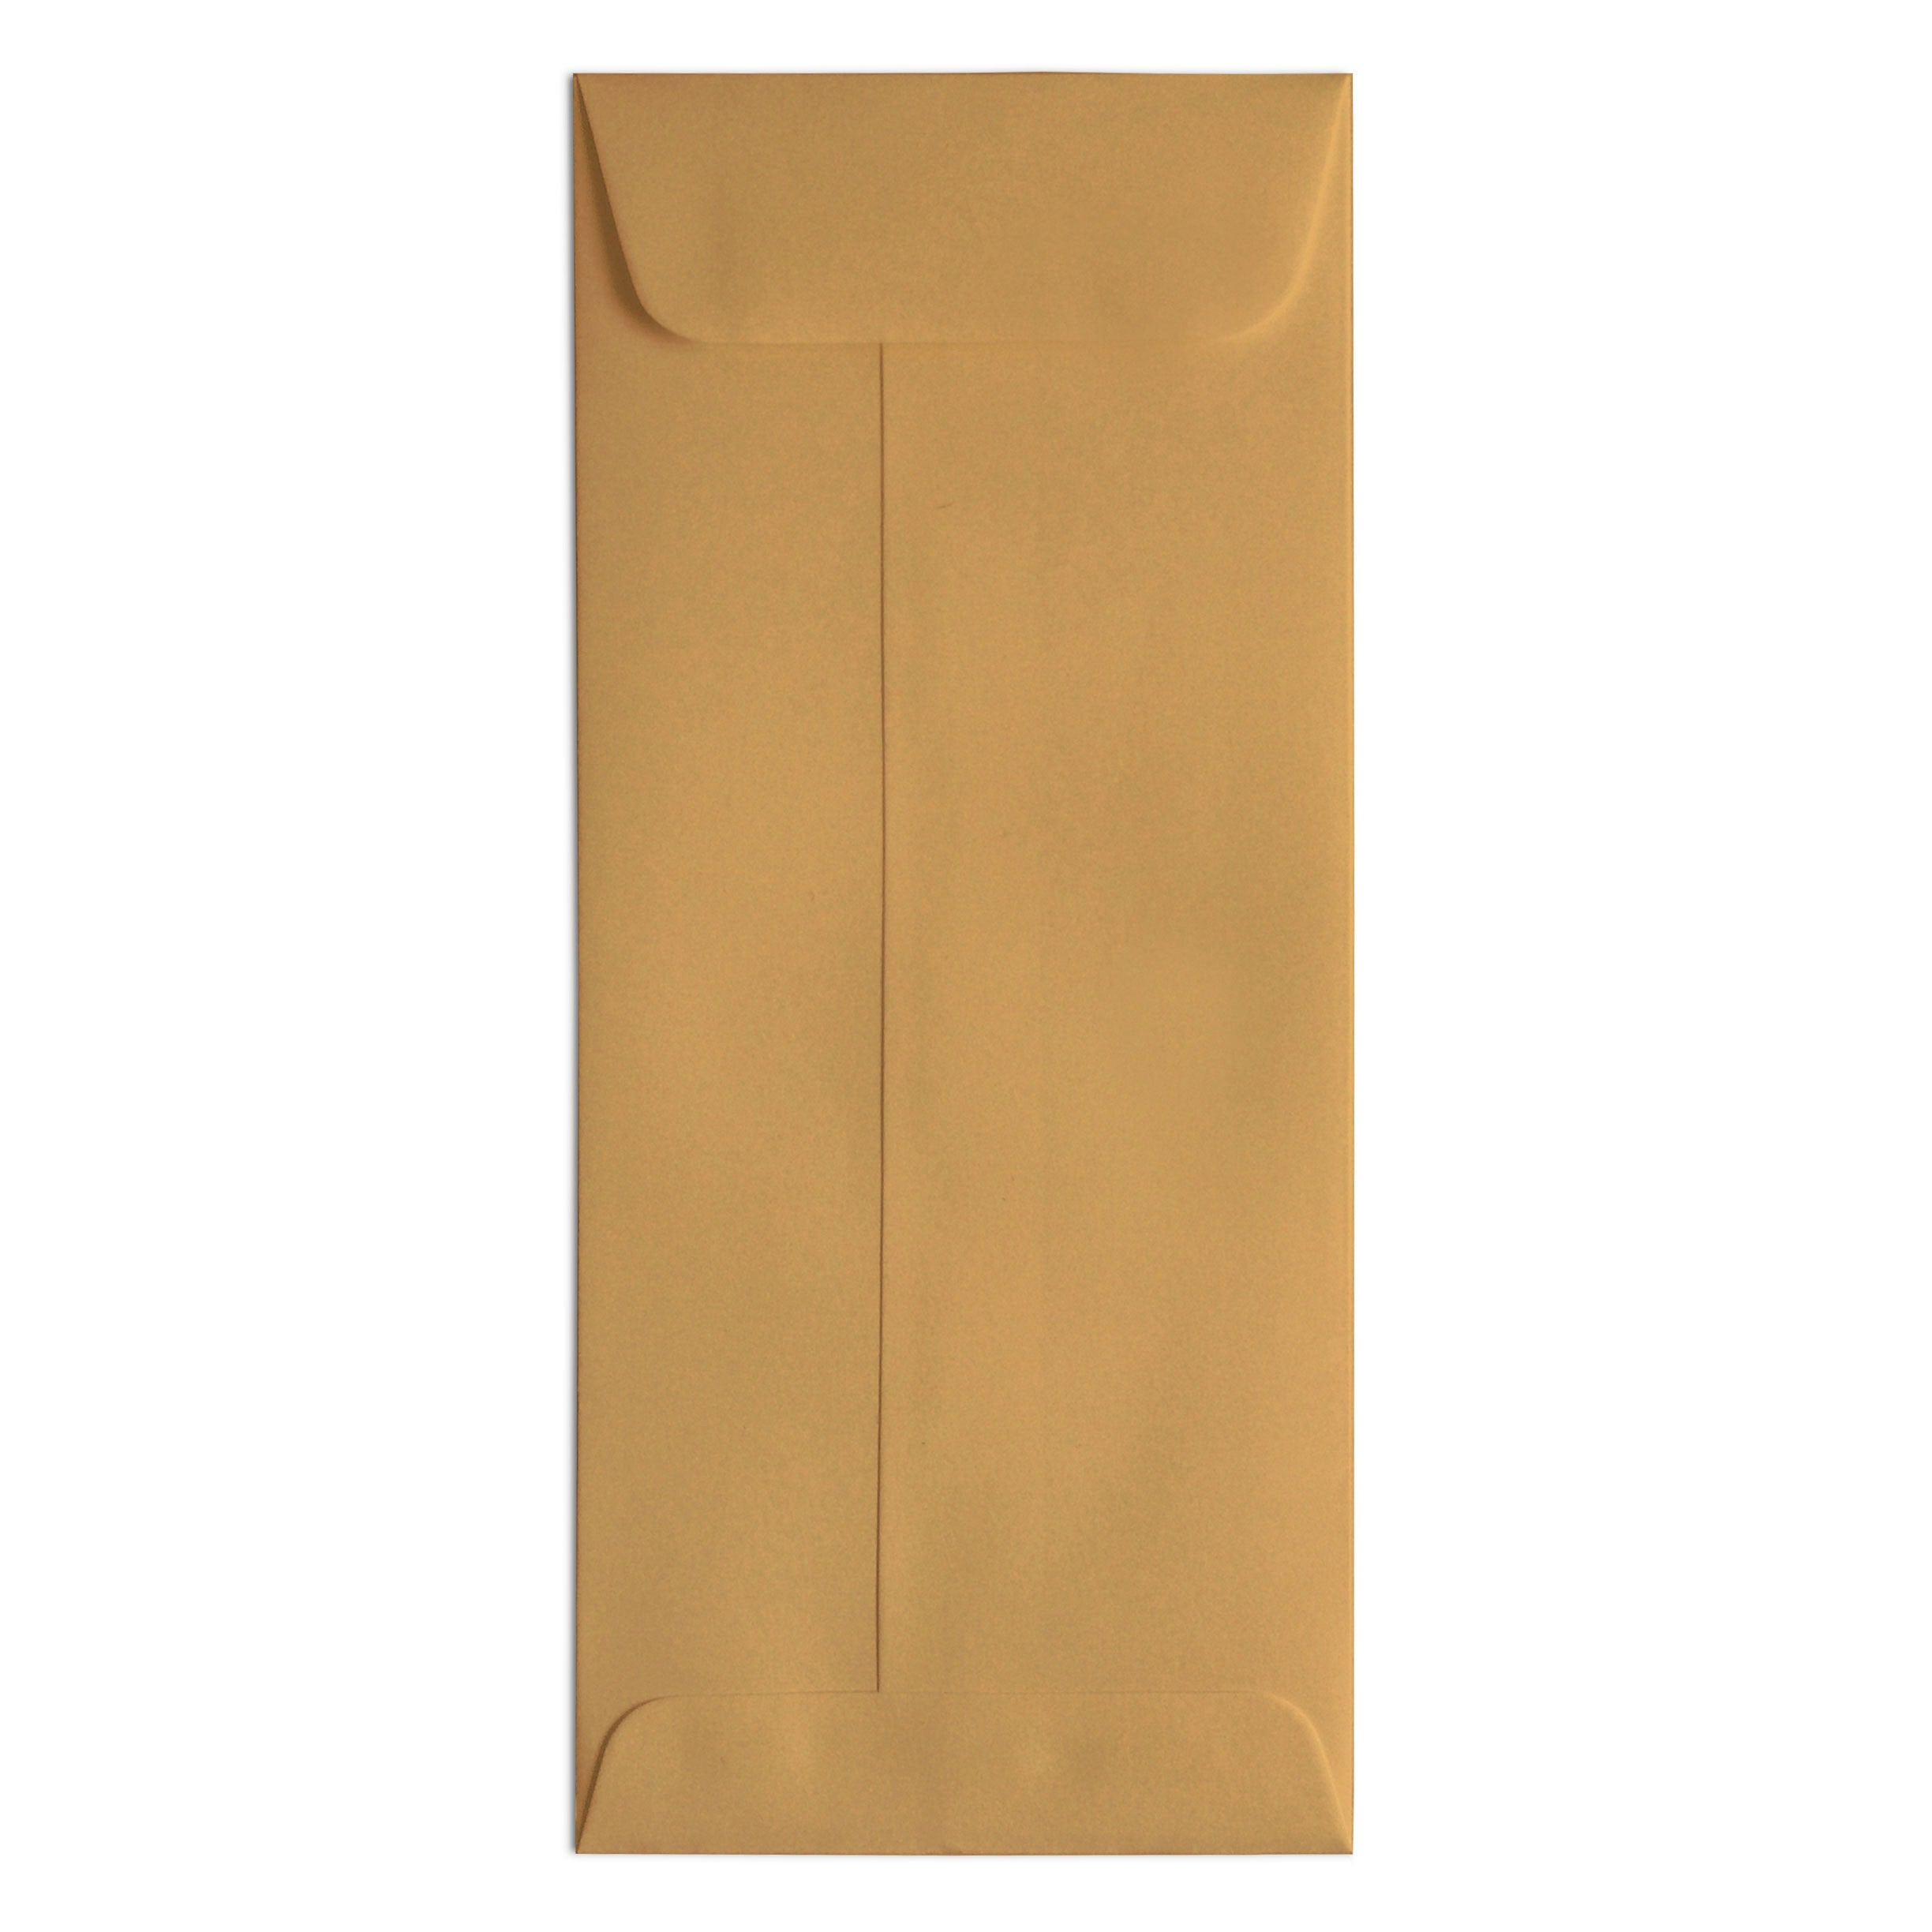 #10 Business Envelope Antique Gold